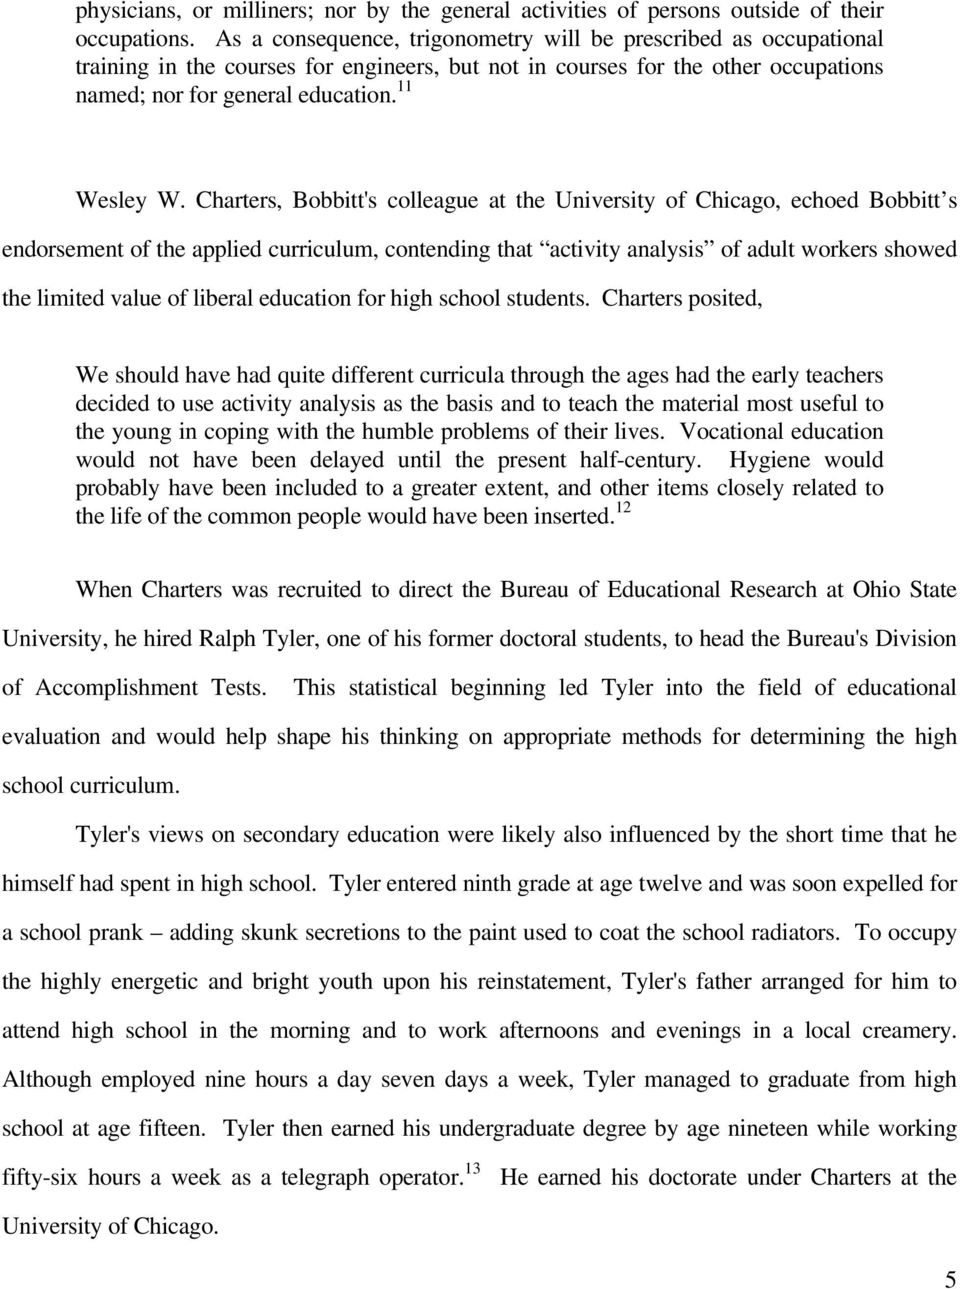 Charters, Bobbitt's colleague at the University of Chicago, echoed Bobbitt s endorsement of the applied curriculum, contending that activity analysis of adult workers showed the limited value of